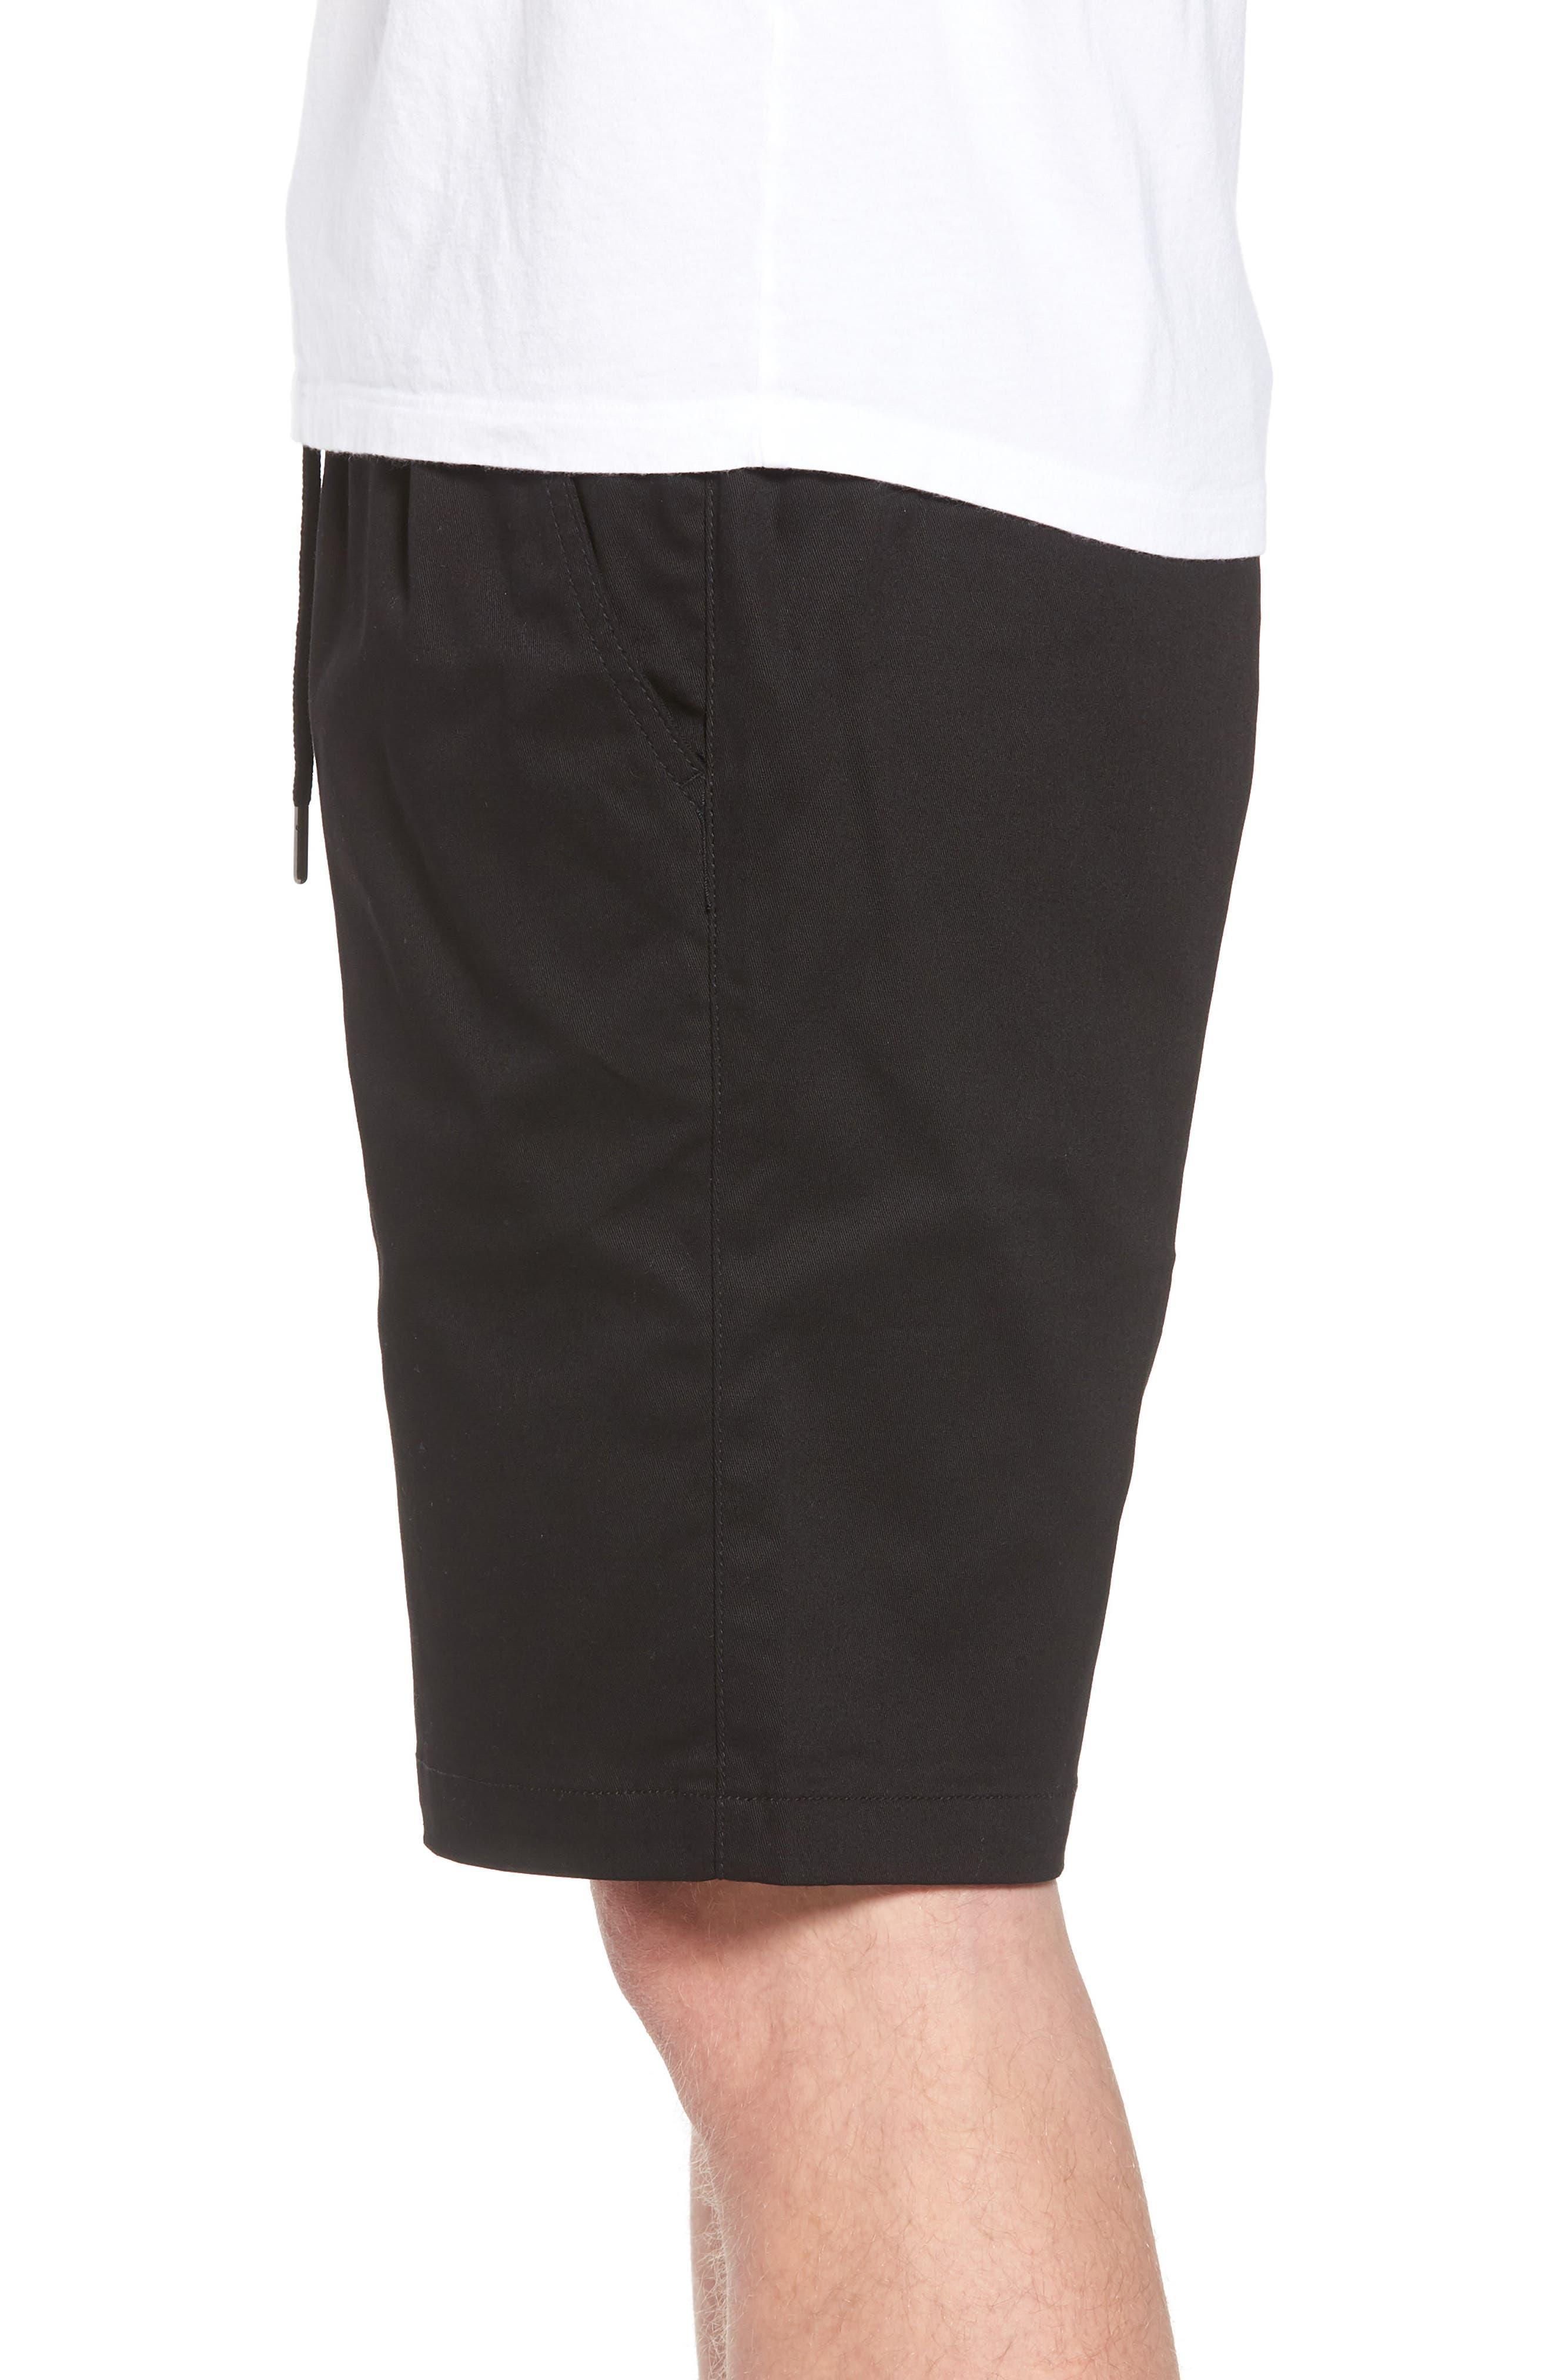 Runner Shorts,                             Alternate thumbnail 3, color,                             Black